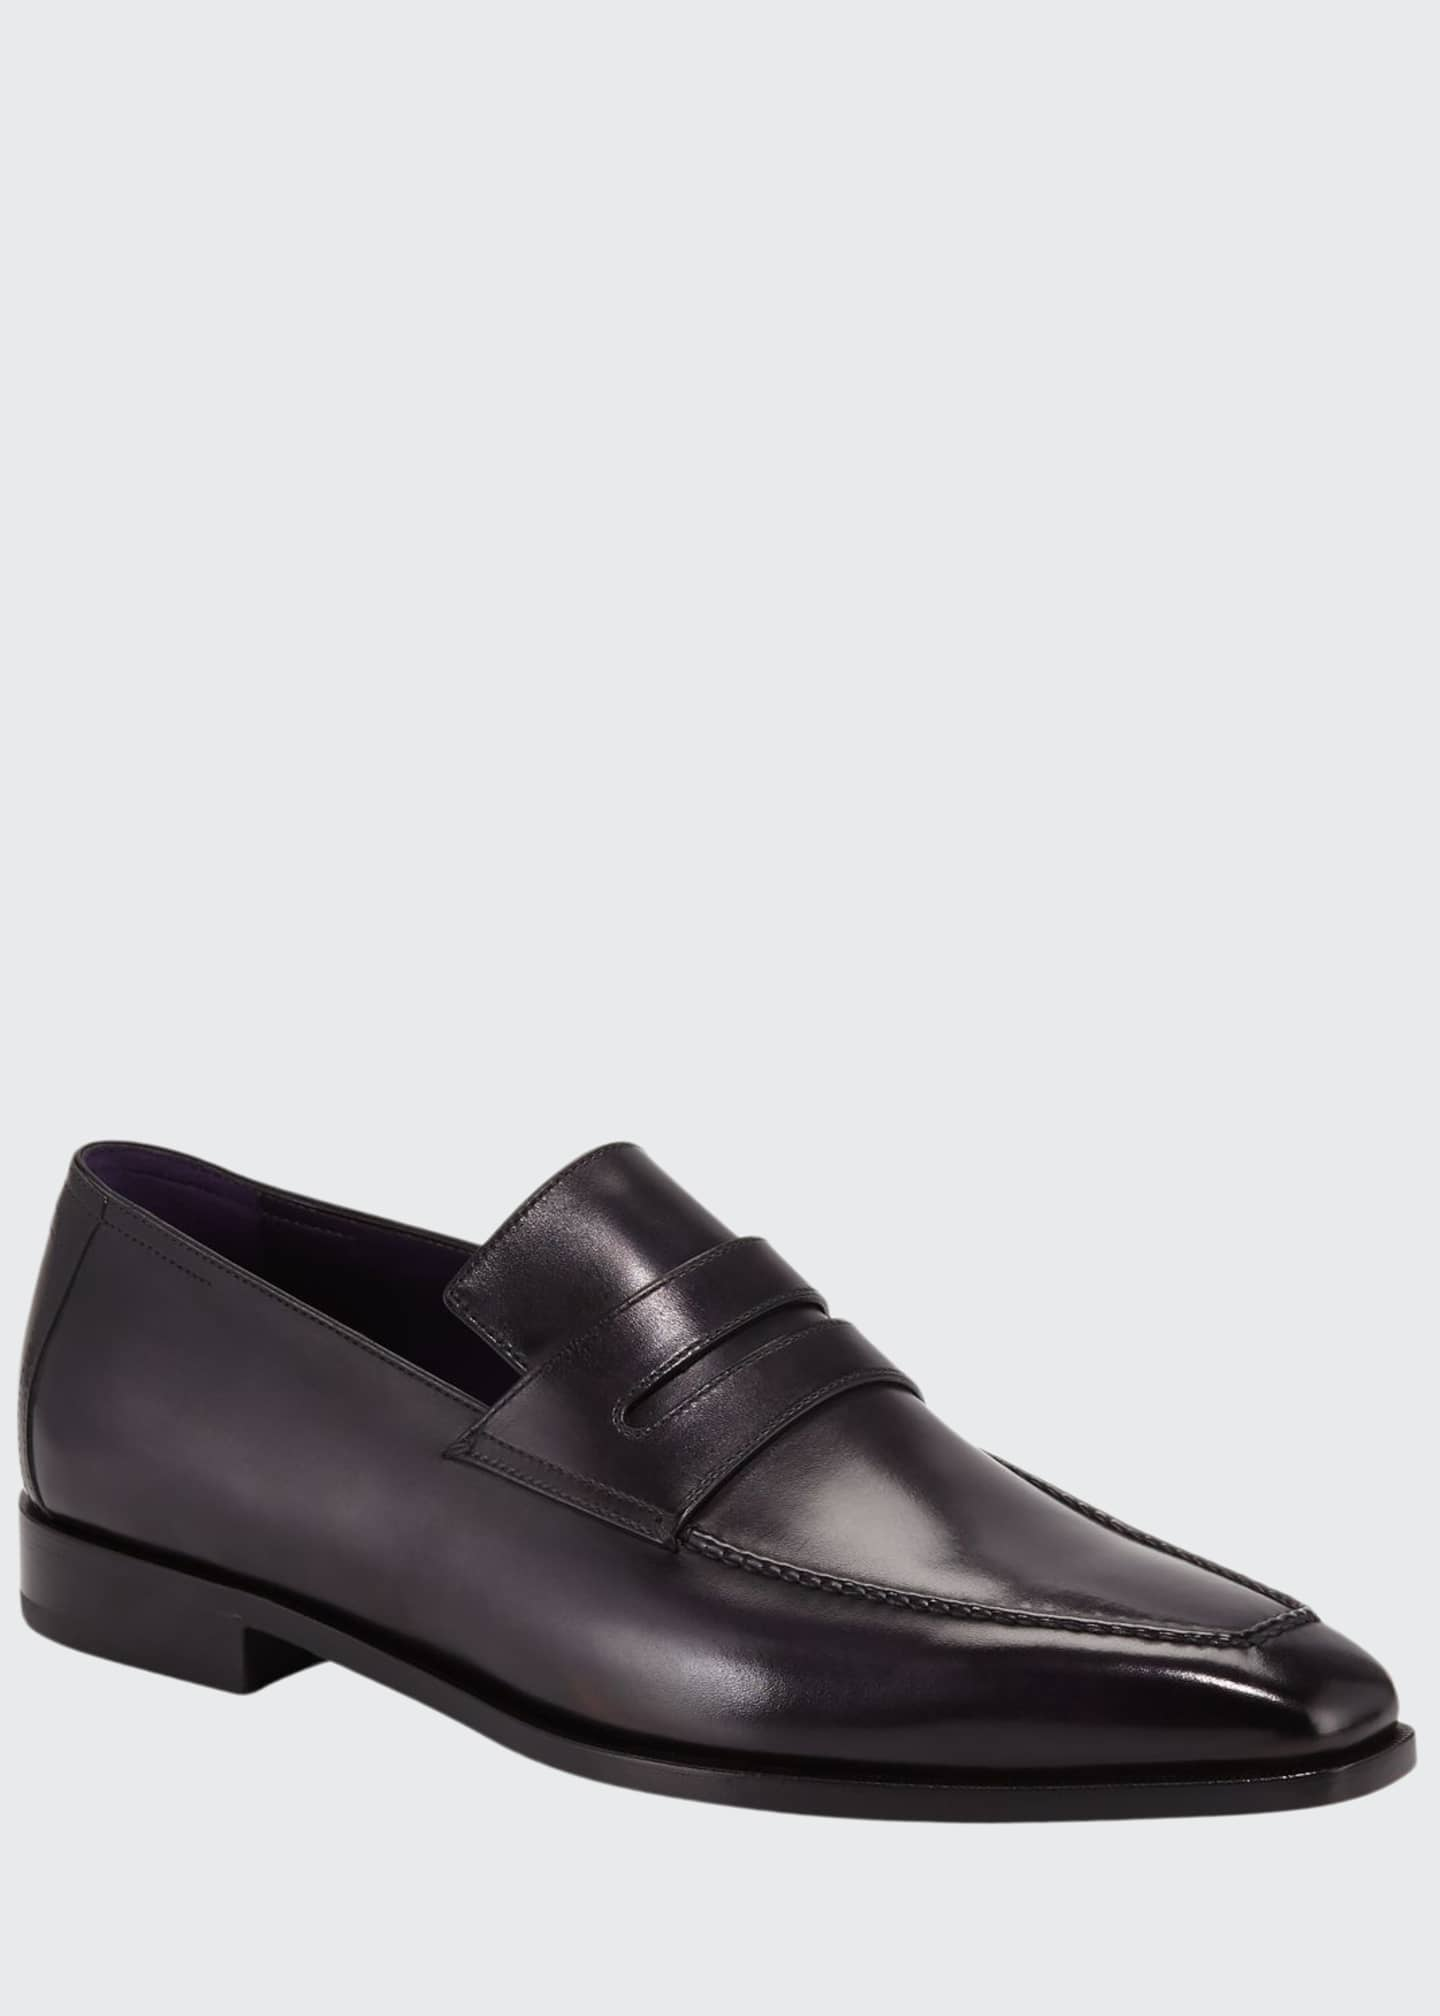 Image 1 of 3: Men's Andy Demesure Calf Leather Loafer